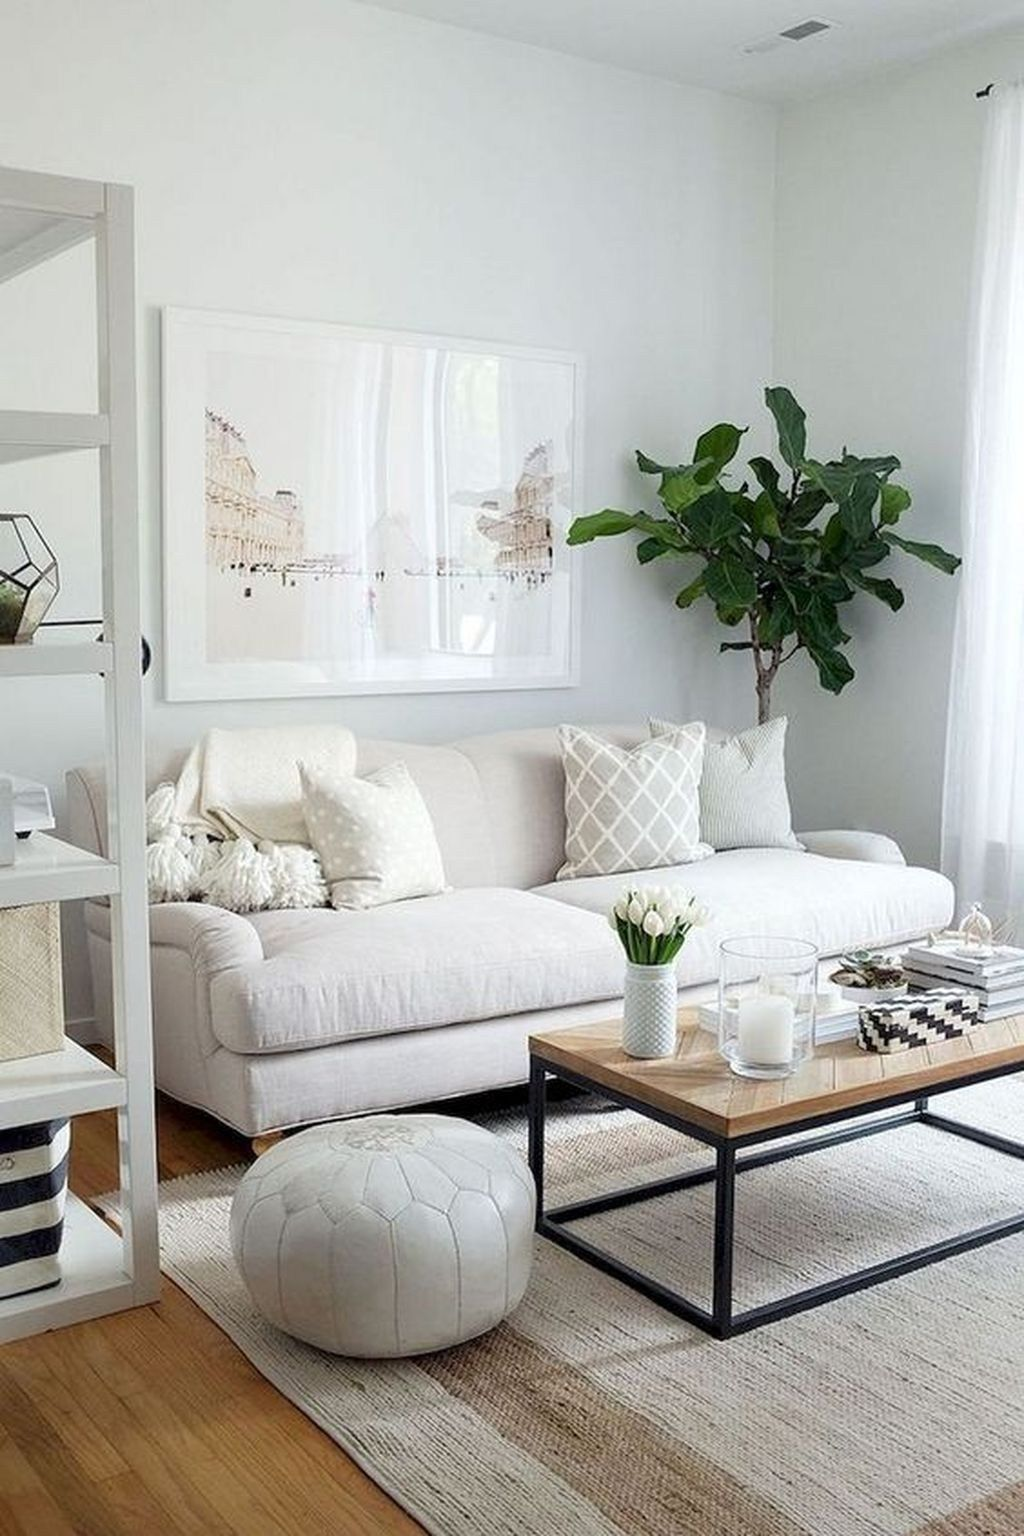 48 Inspiring Modern Living Room Decorations Ideas To Manage Your Home Trendehouse Small Apartment Decorating Living Room Small Living Room Decor Living Room Decor Apartment